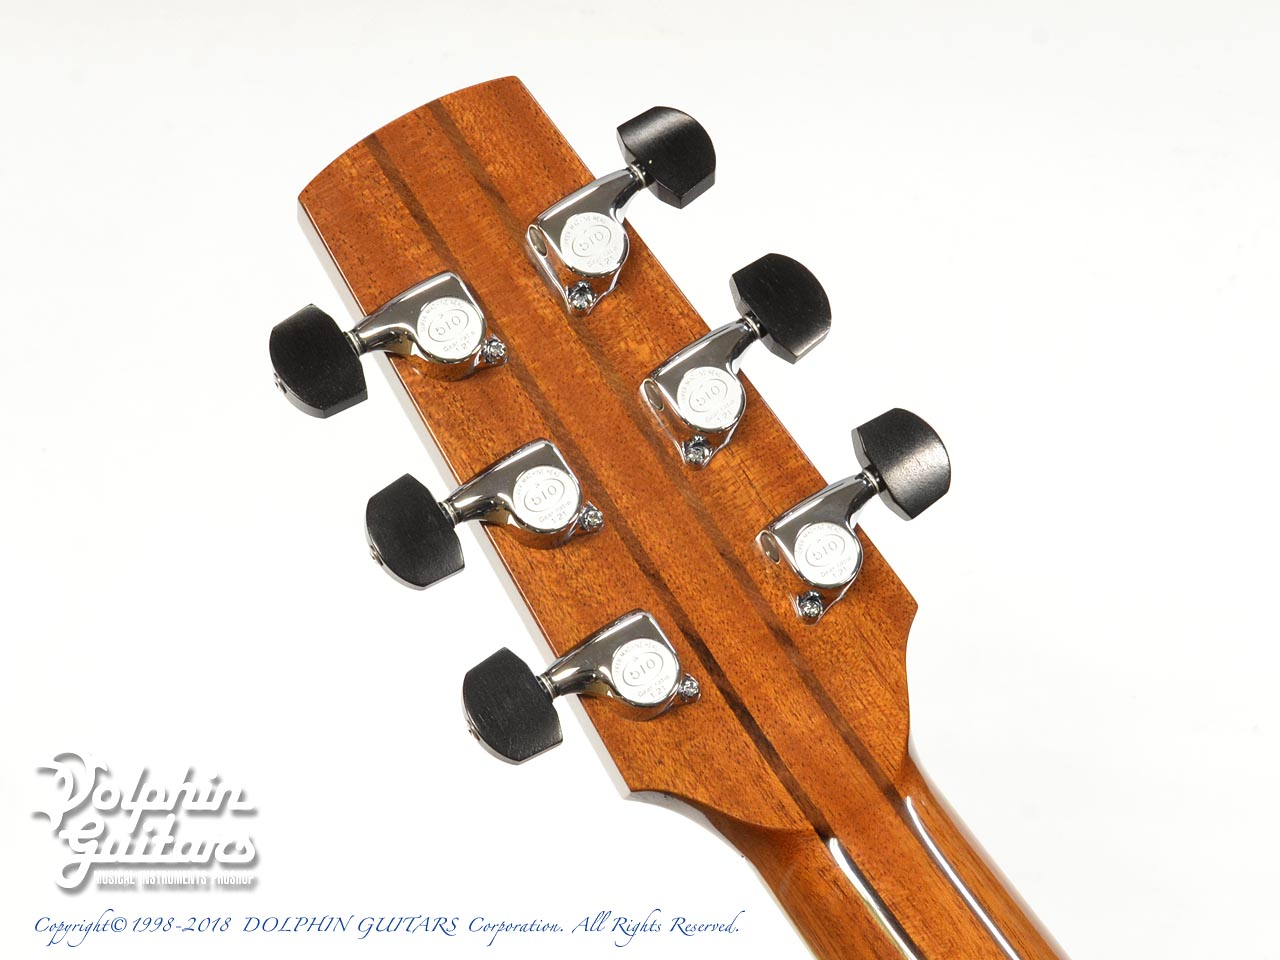 IWANEKO GUITARS: Type-MD (Dimple Cutaway) (7)